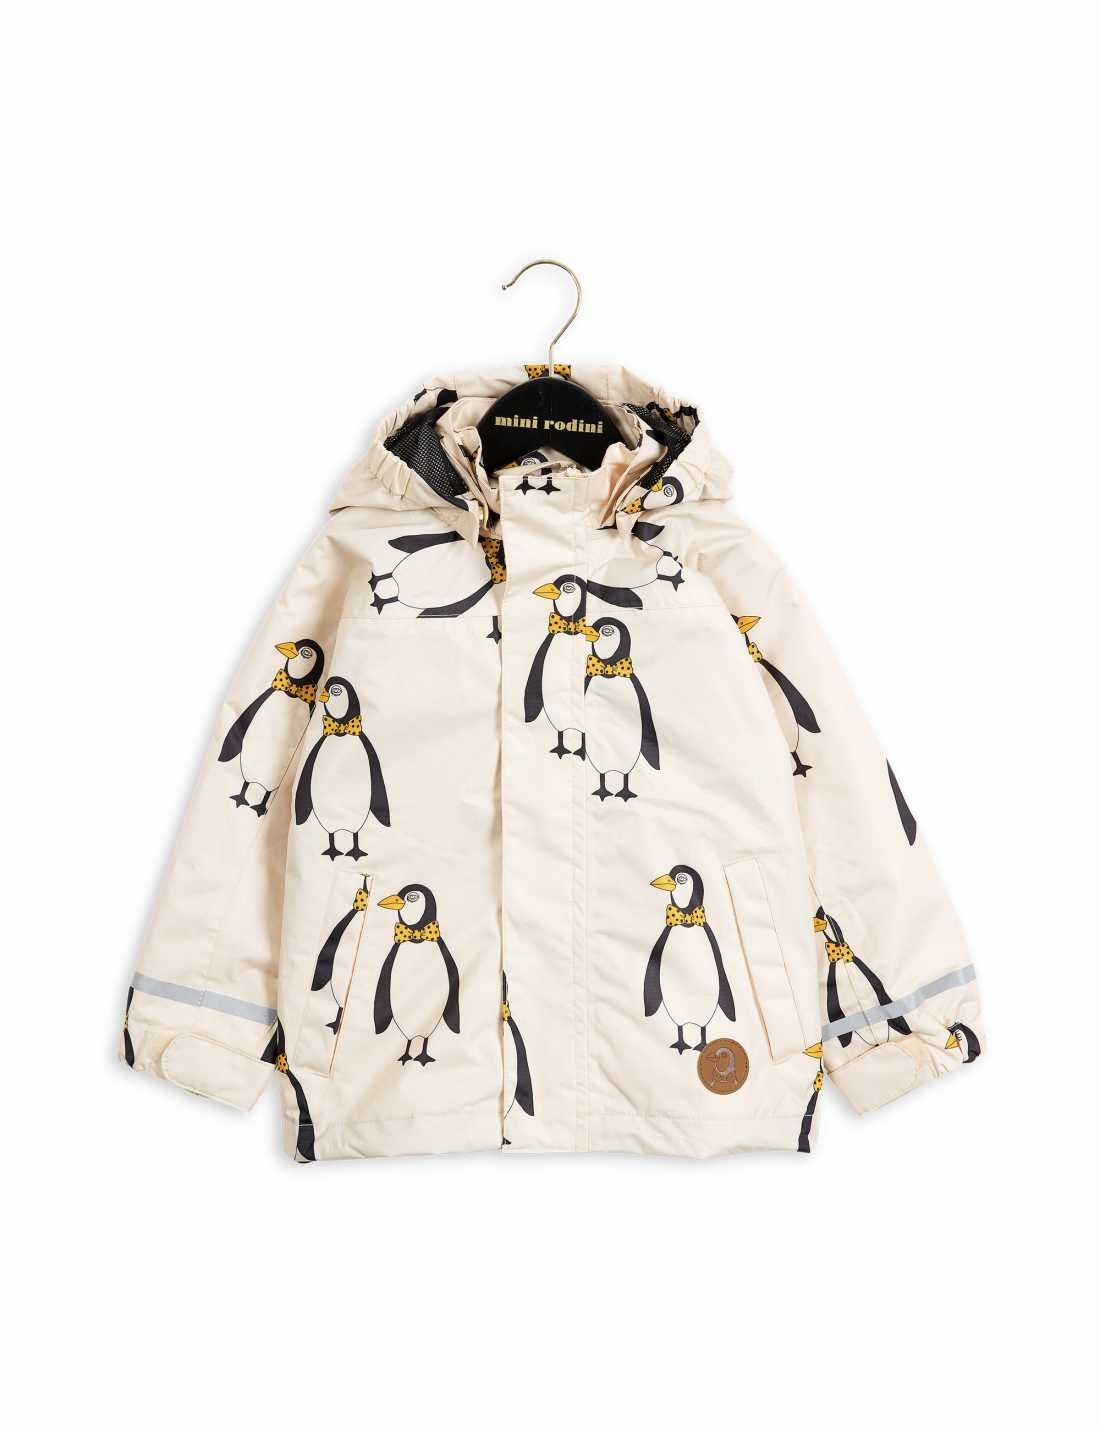 Highly functional and very durable beige shell jacket with printed penguins and environmentally friendly BIONIC-FINISH® ECO coating.